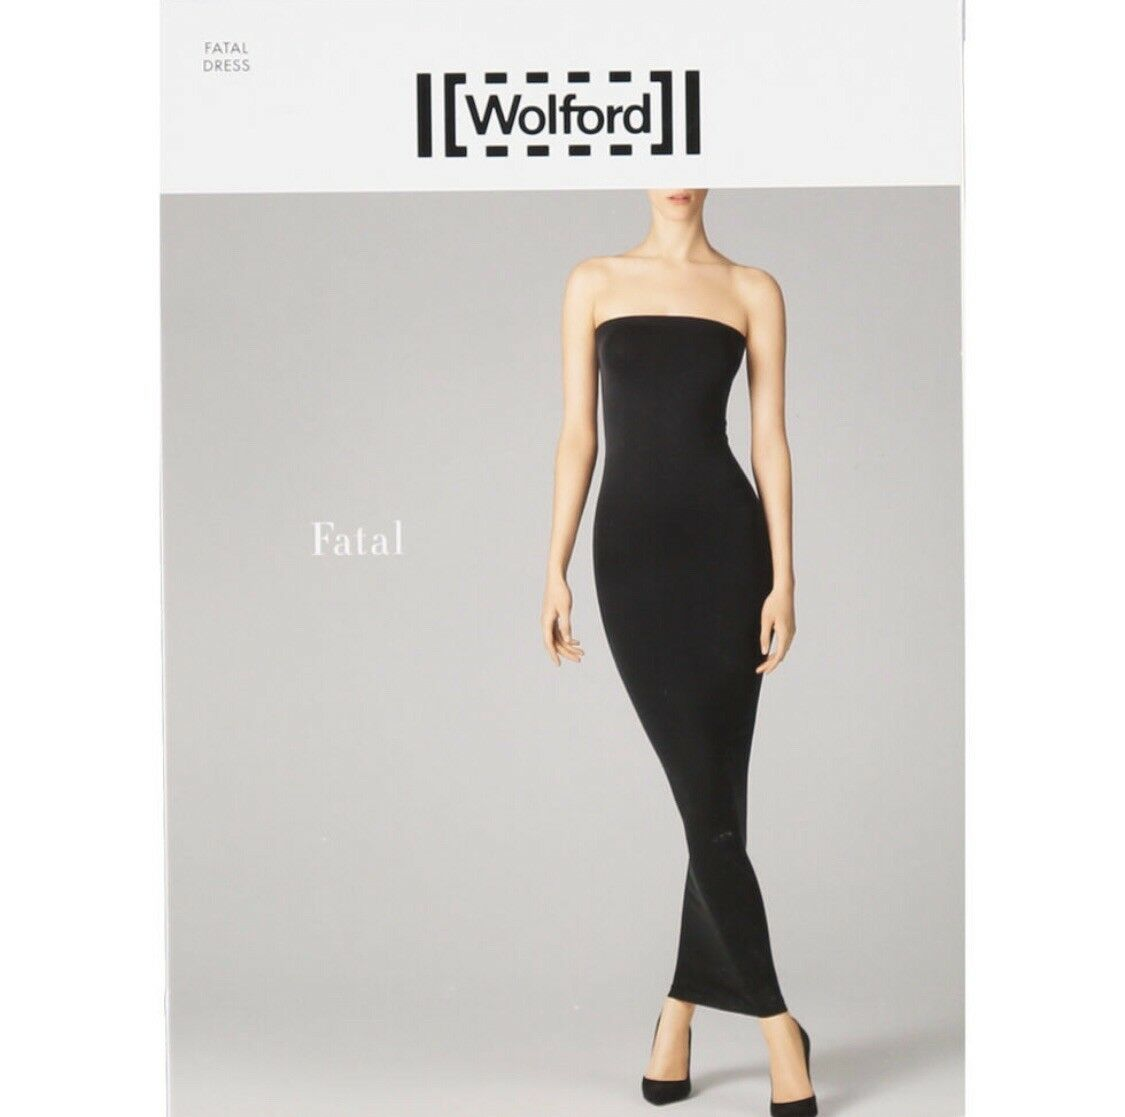 Wolford Fatal Dress in Sun Yellow - Bodycon Tube Strapless Dress - Large UK16-18